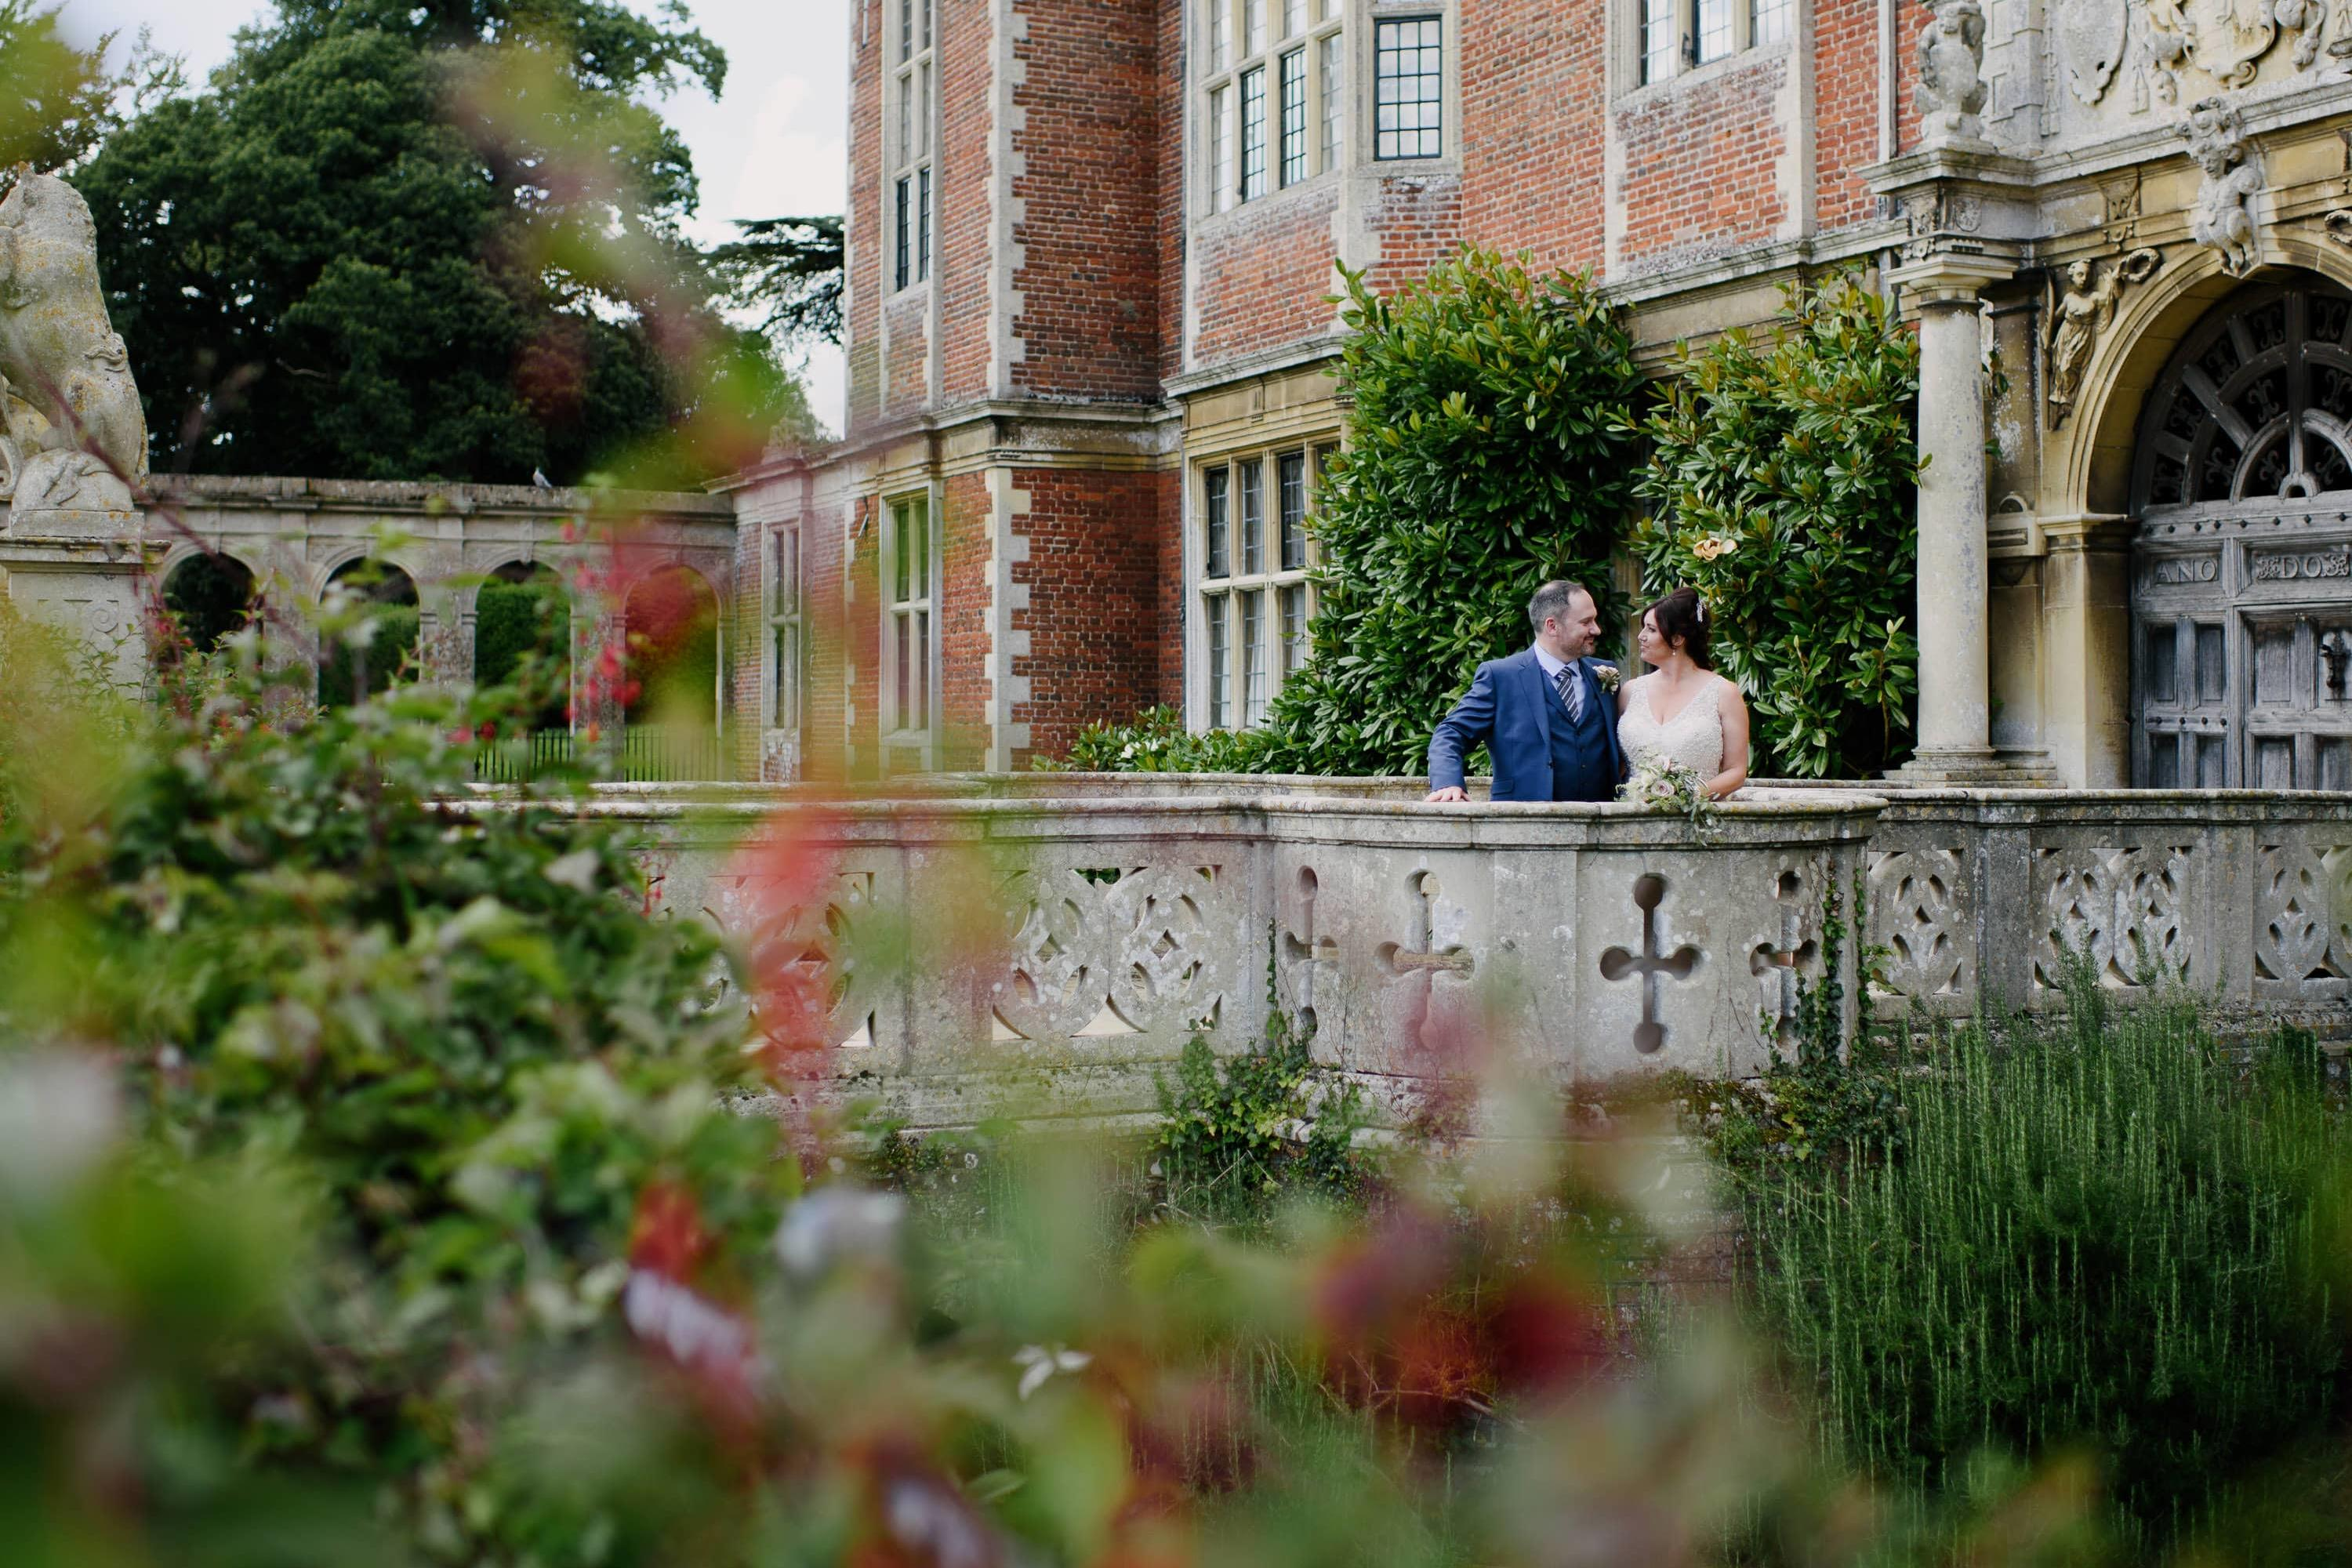 Suzy & Mike - Blickling Hall - Great British Proms - Slideshow 8